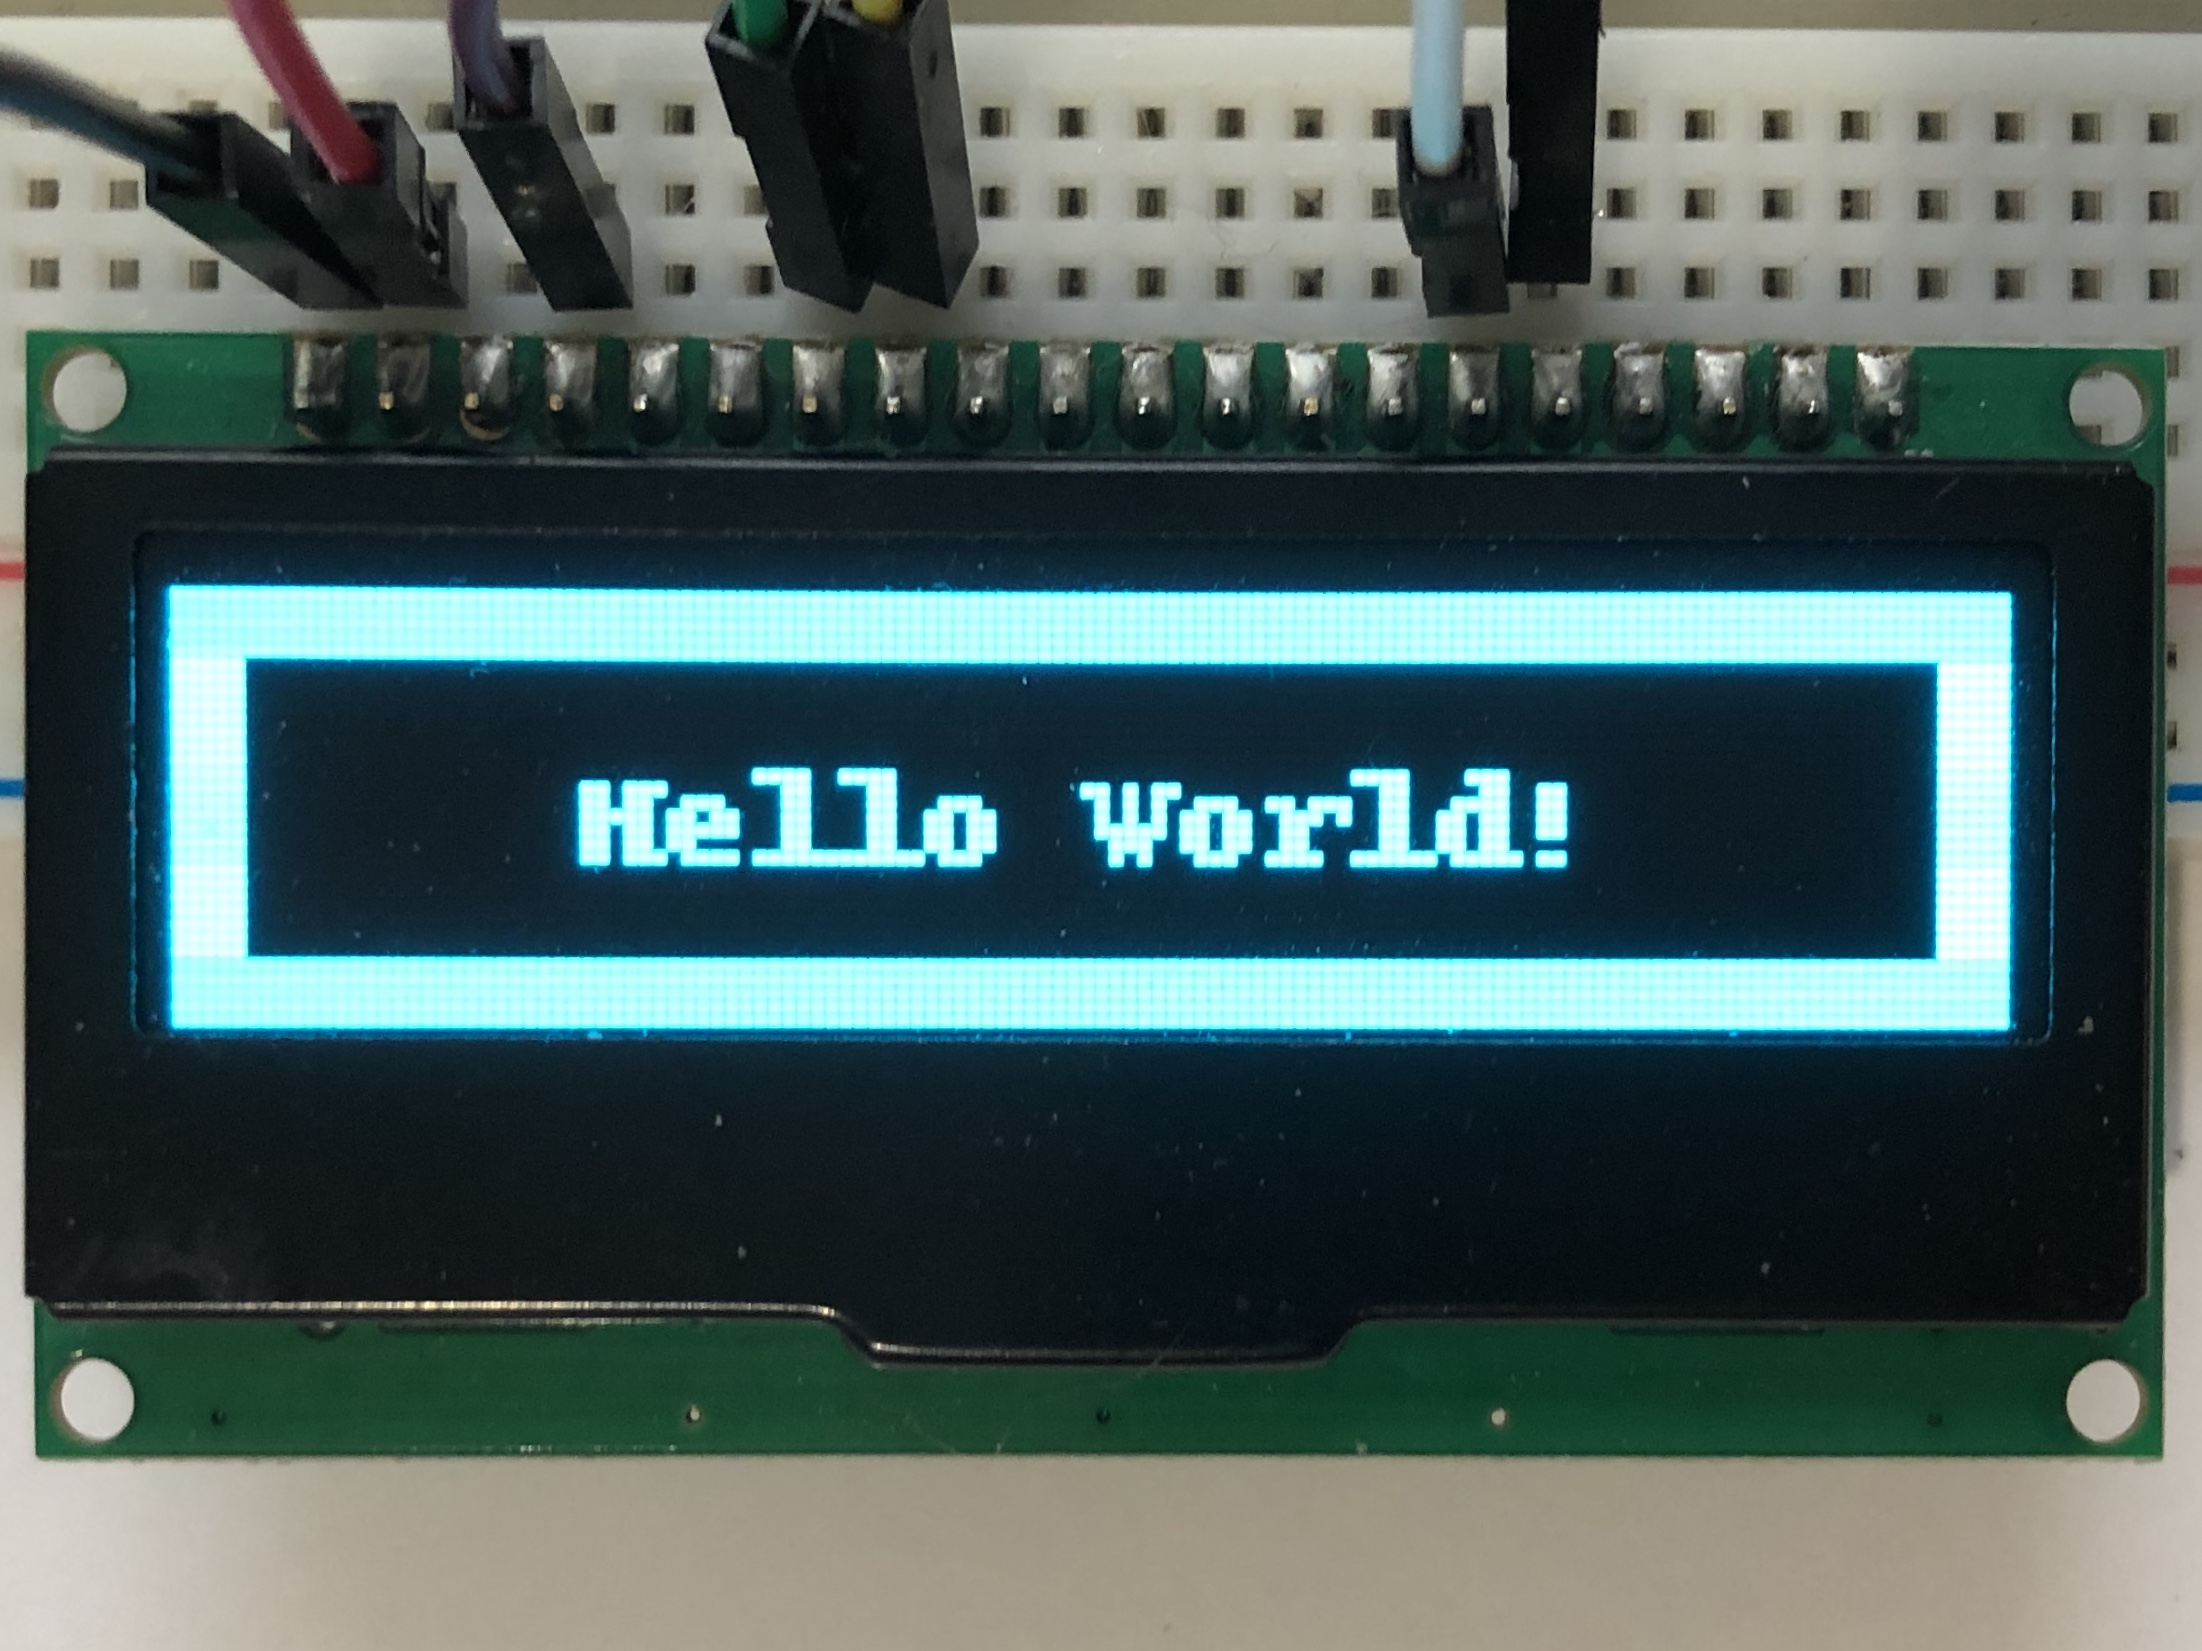 adafruit_products_python-hello-world-32.jpeg